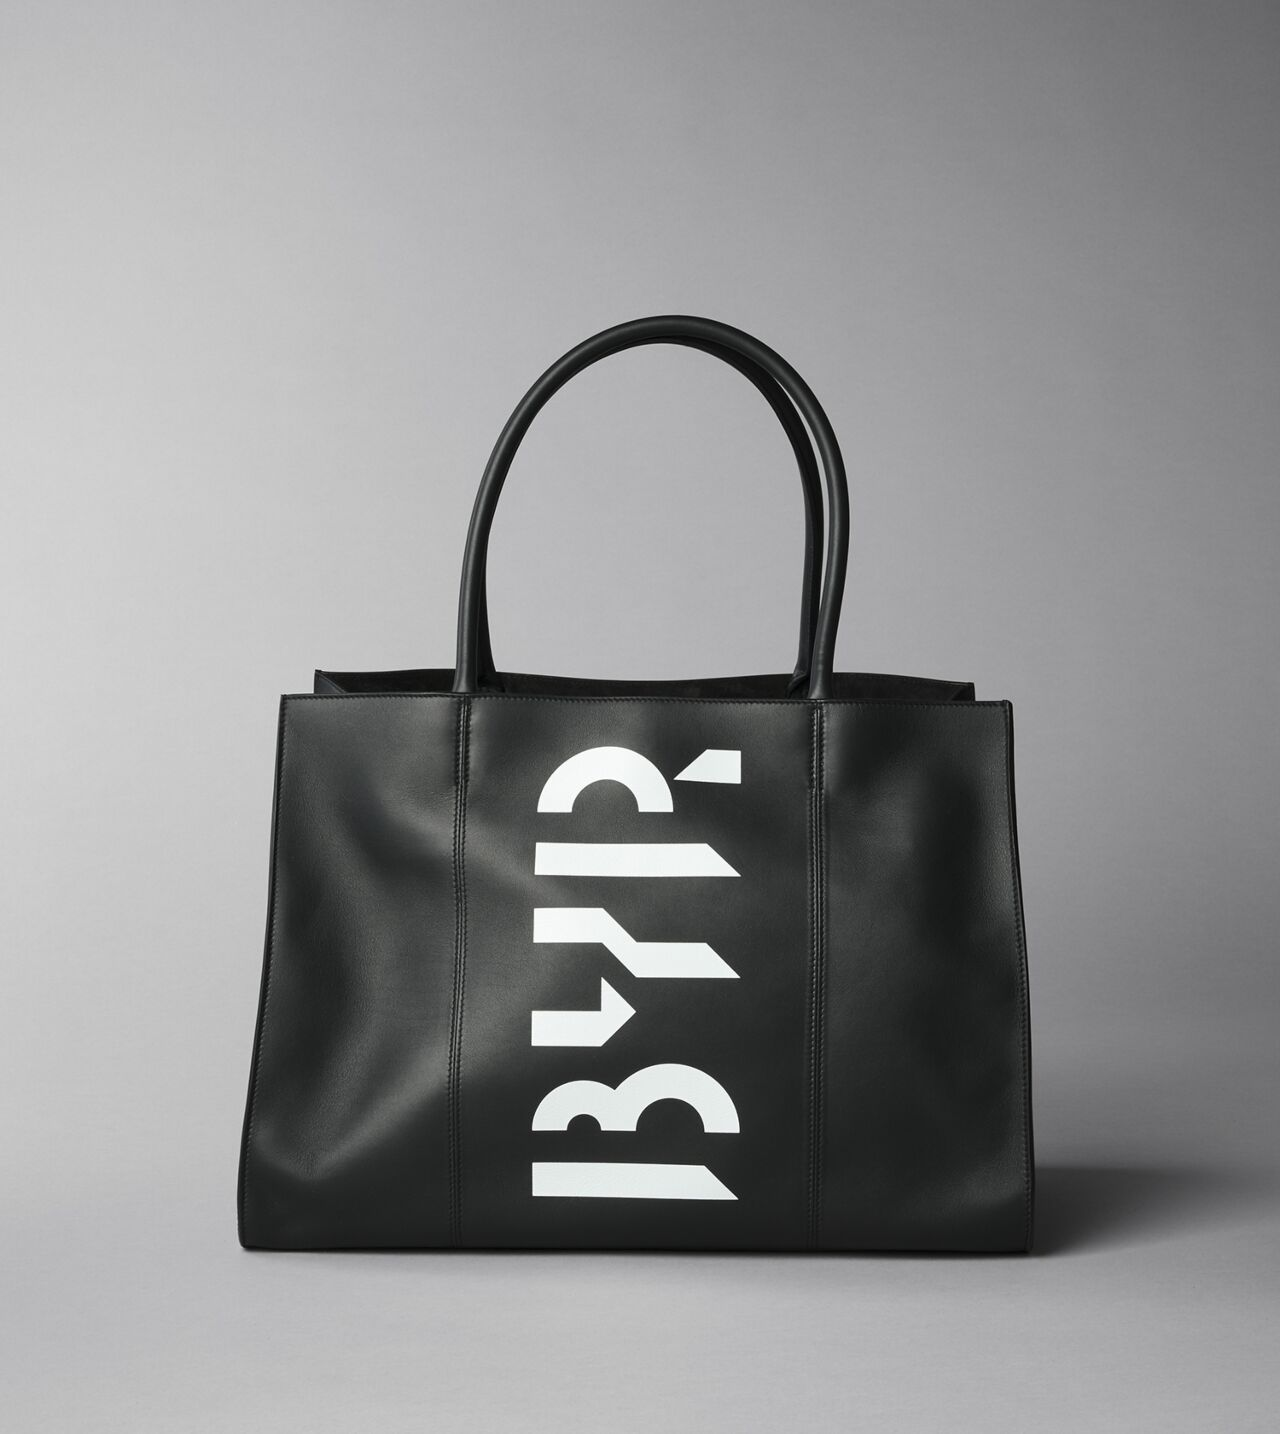 Picture of Byredo Best Coast bag in Black leather and white BYREDO logo print